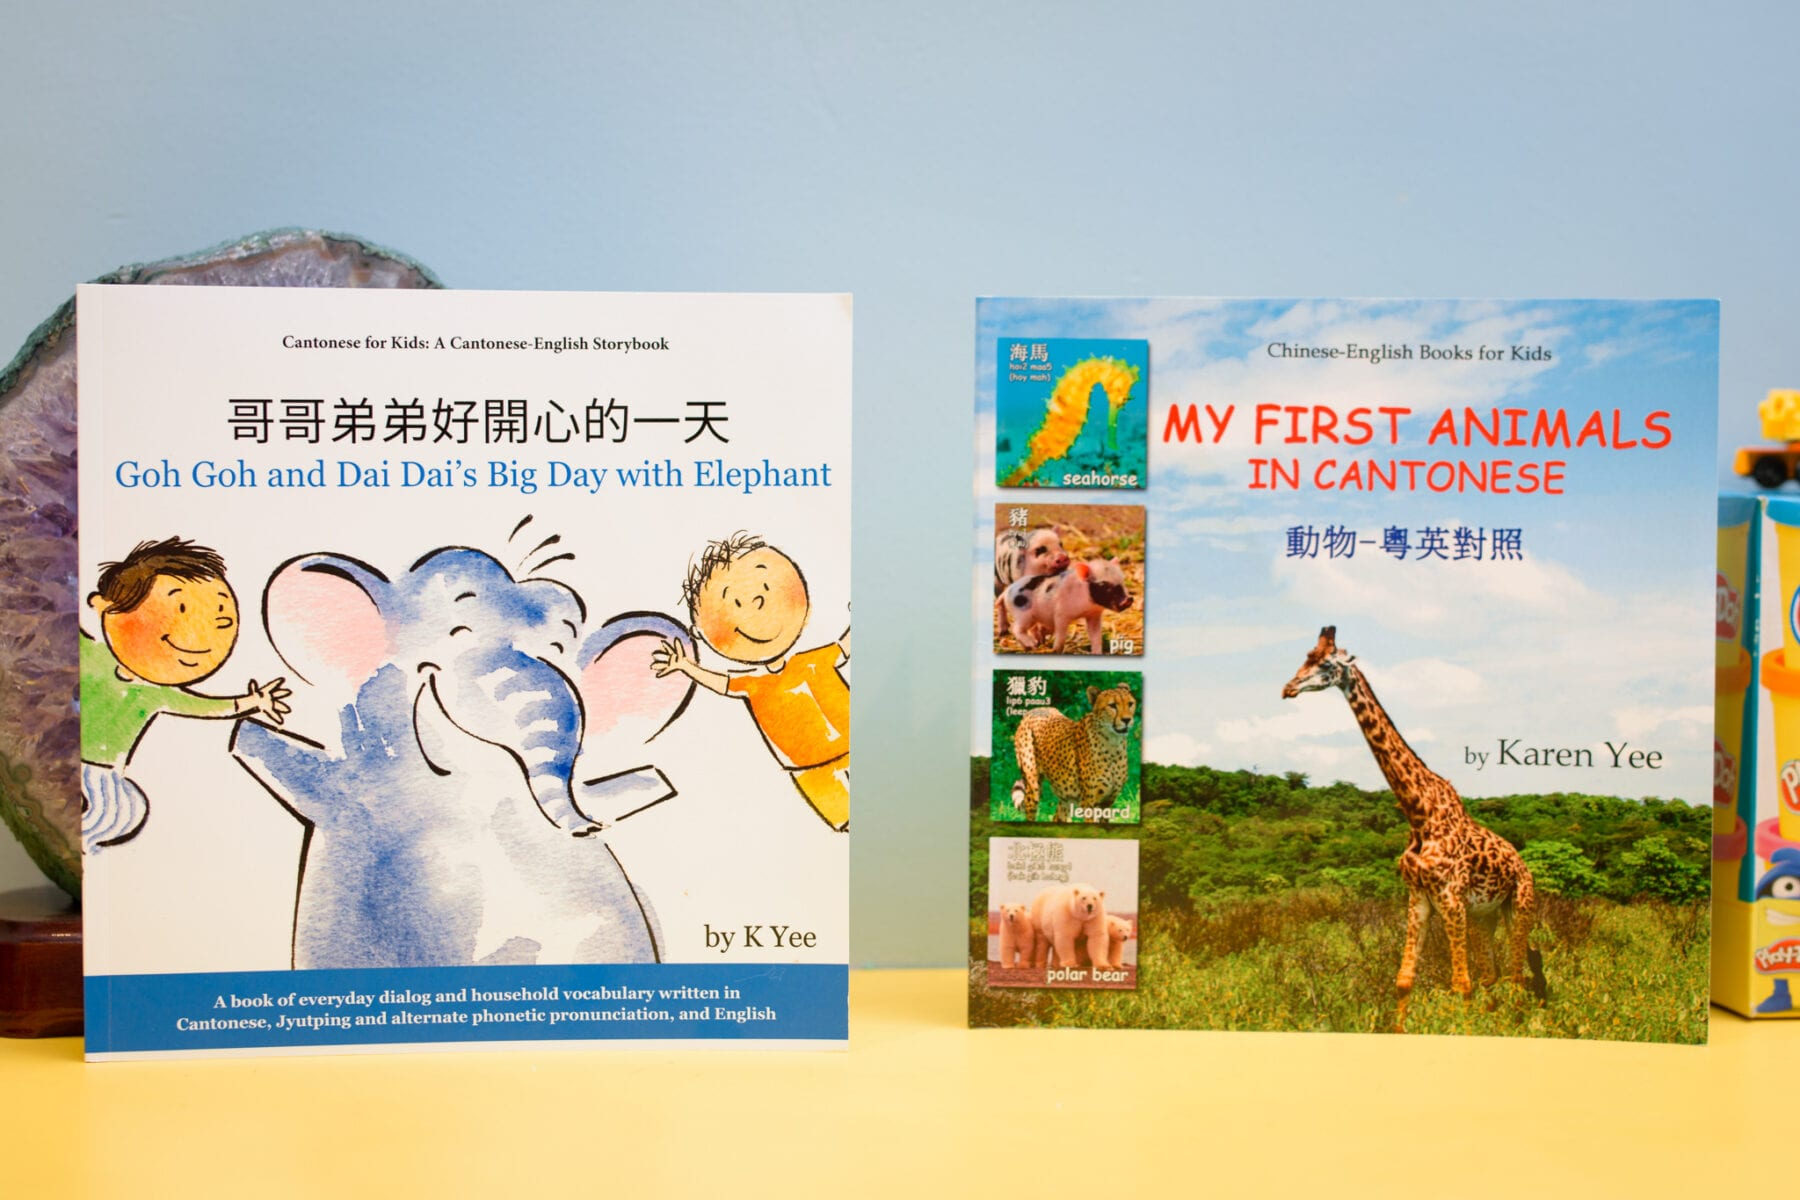 resources and activities to teach kids reading in cantonese